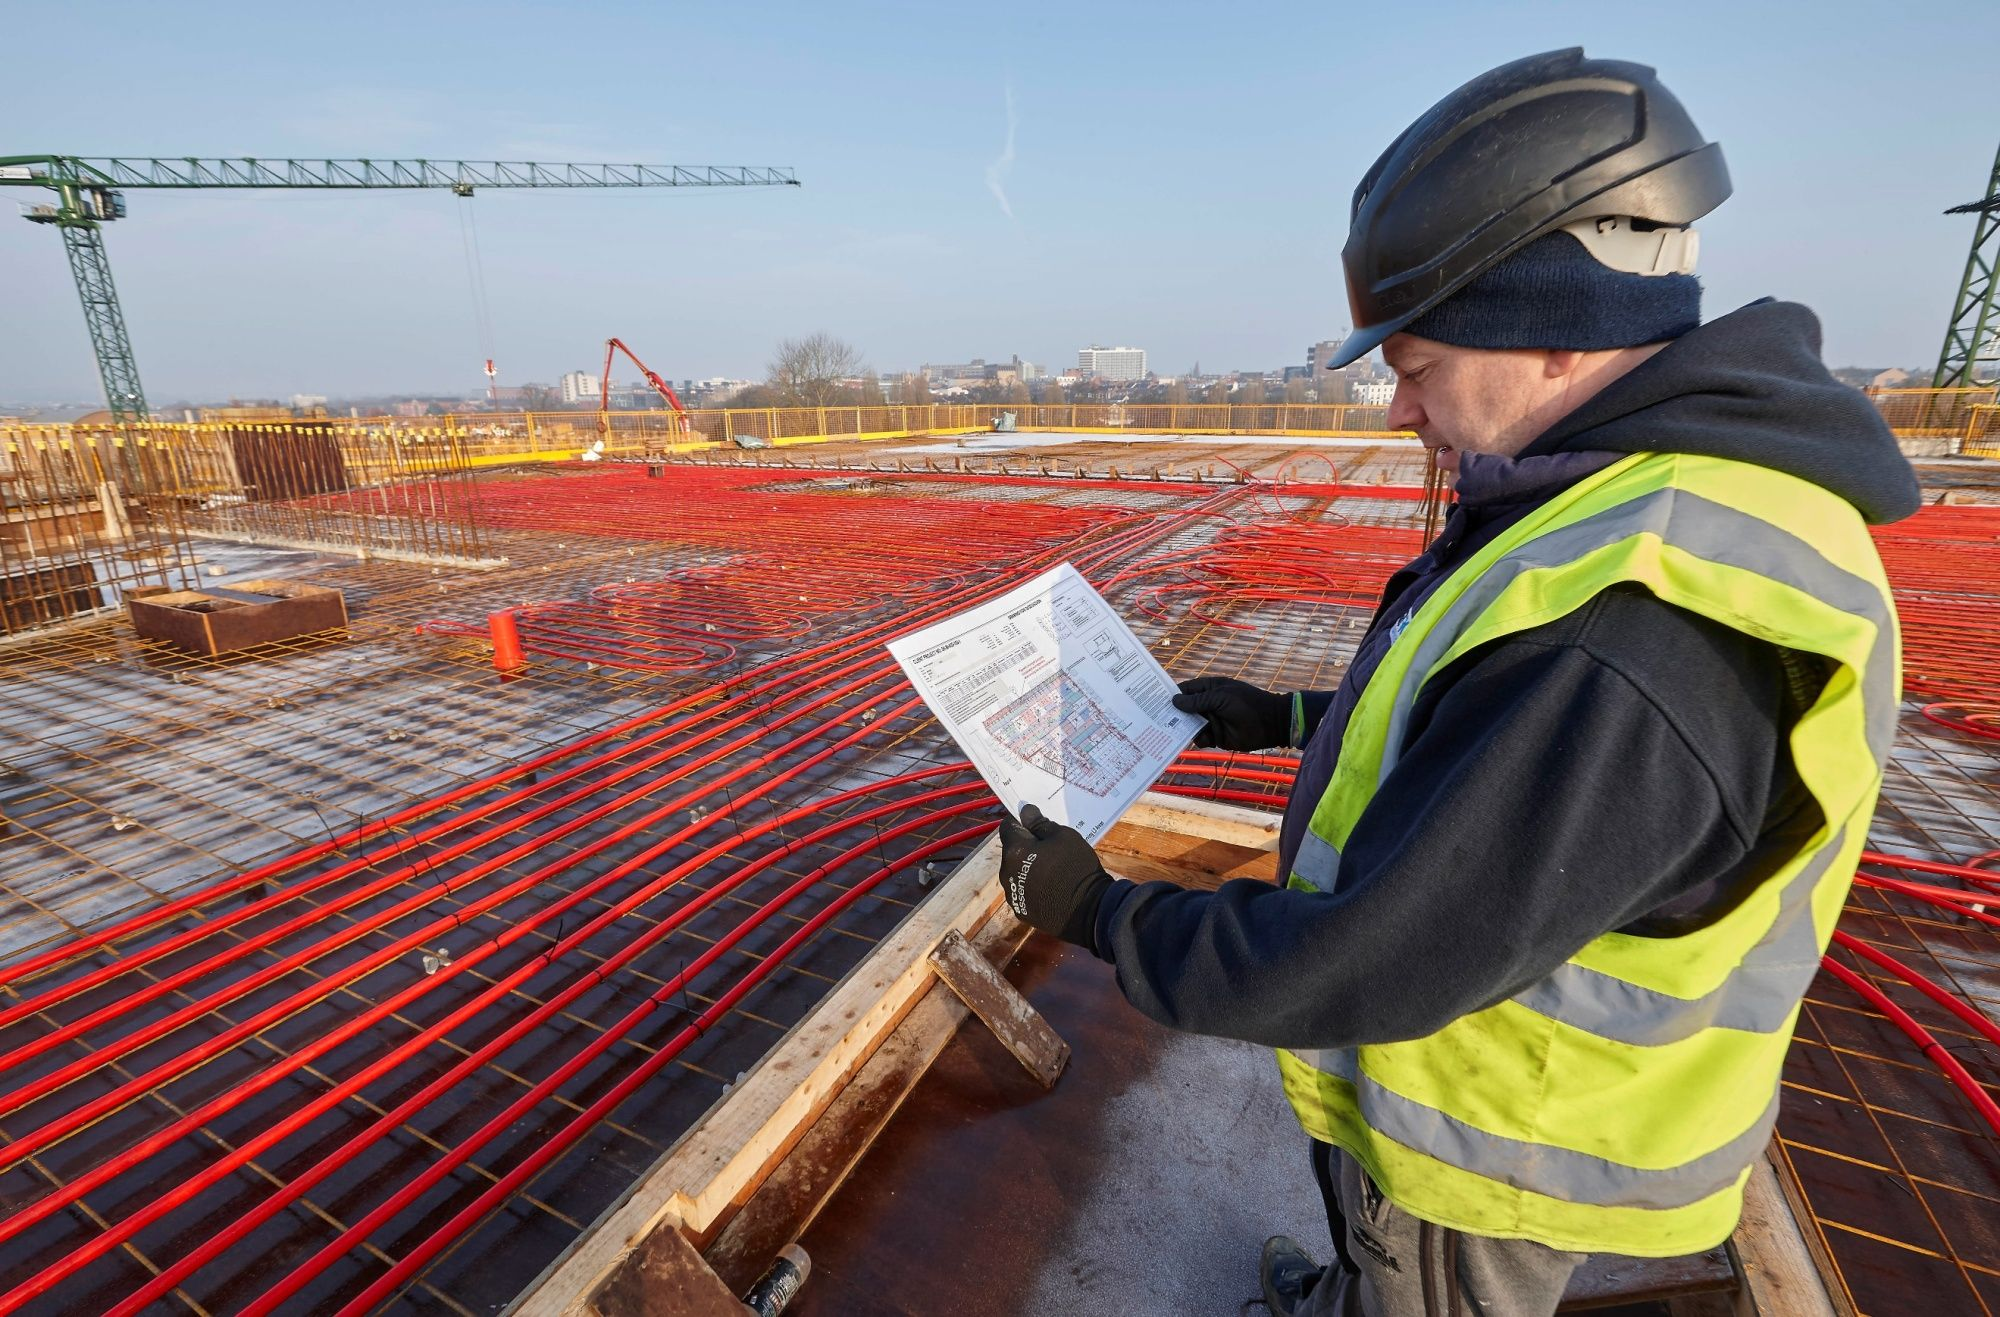 Construction Sector Must Manage Building Overheating Through Healthy Design